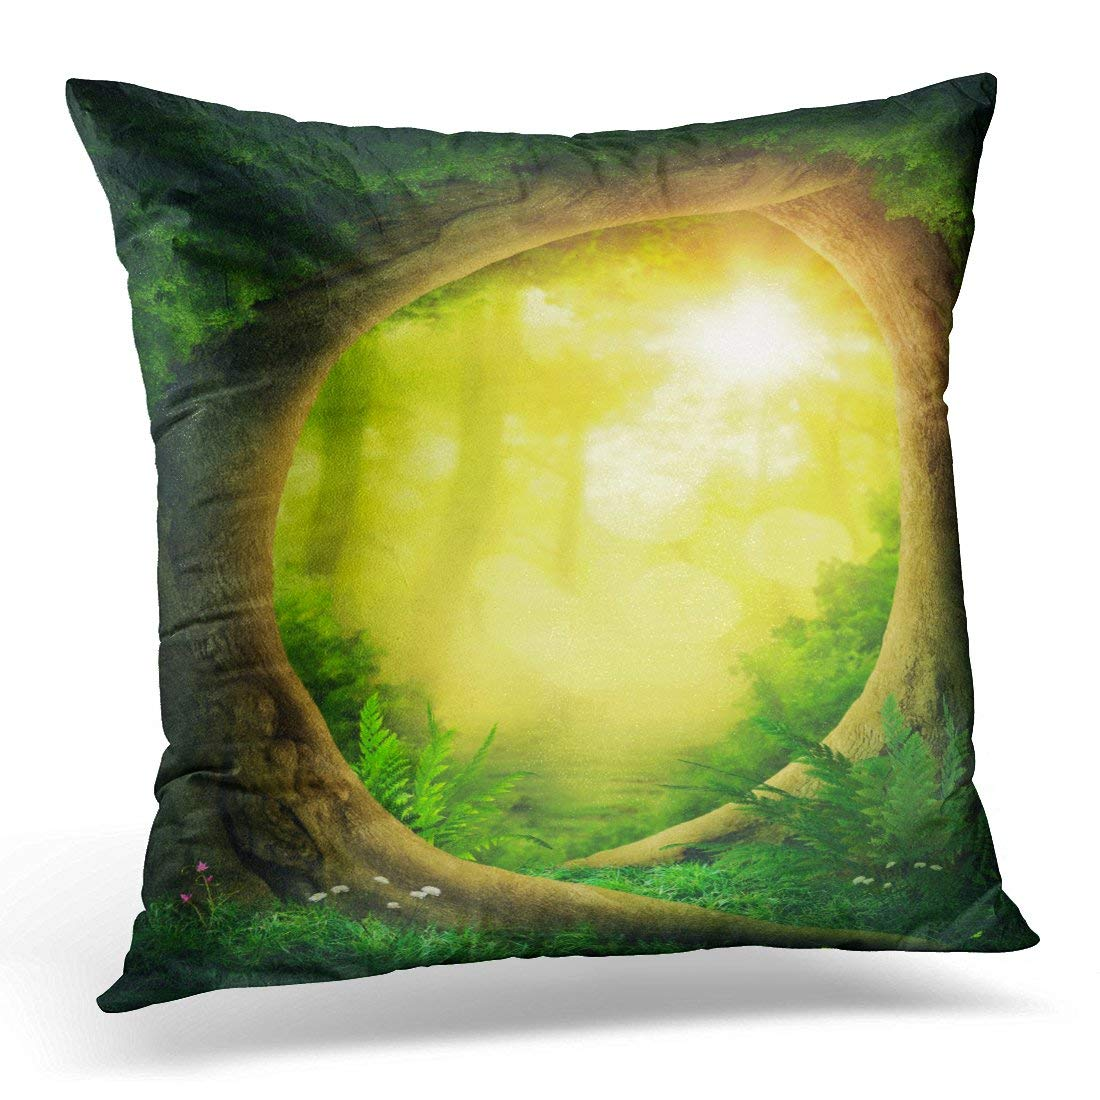 CMFUN Green Dreamy Dark Magic Forest with Sunshine Yellow Enchanted Throw Pillow Case Pillow Cover Sofa Home Decor 16x16 Inches